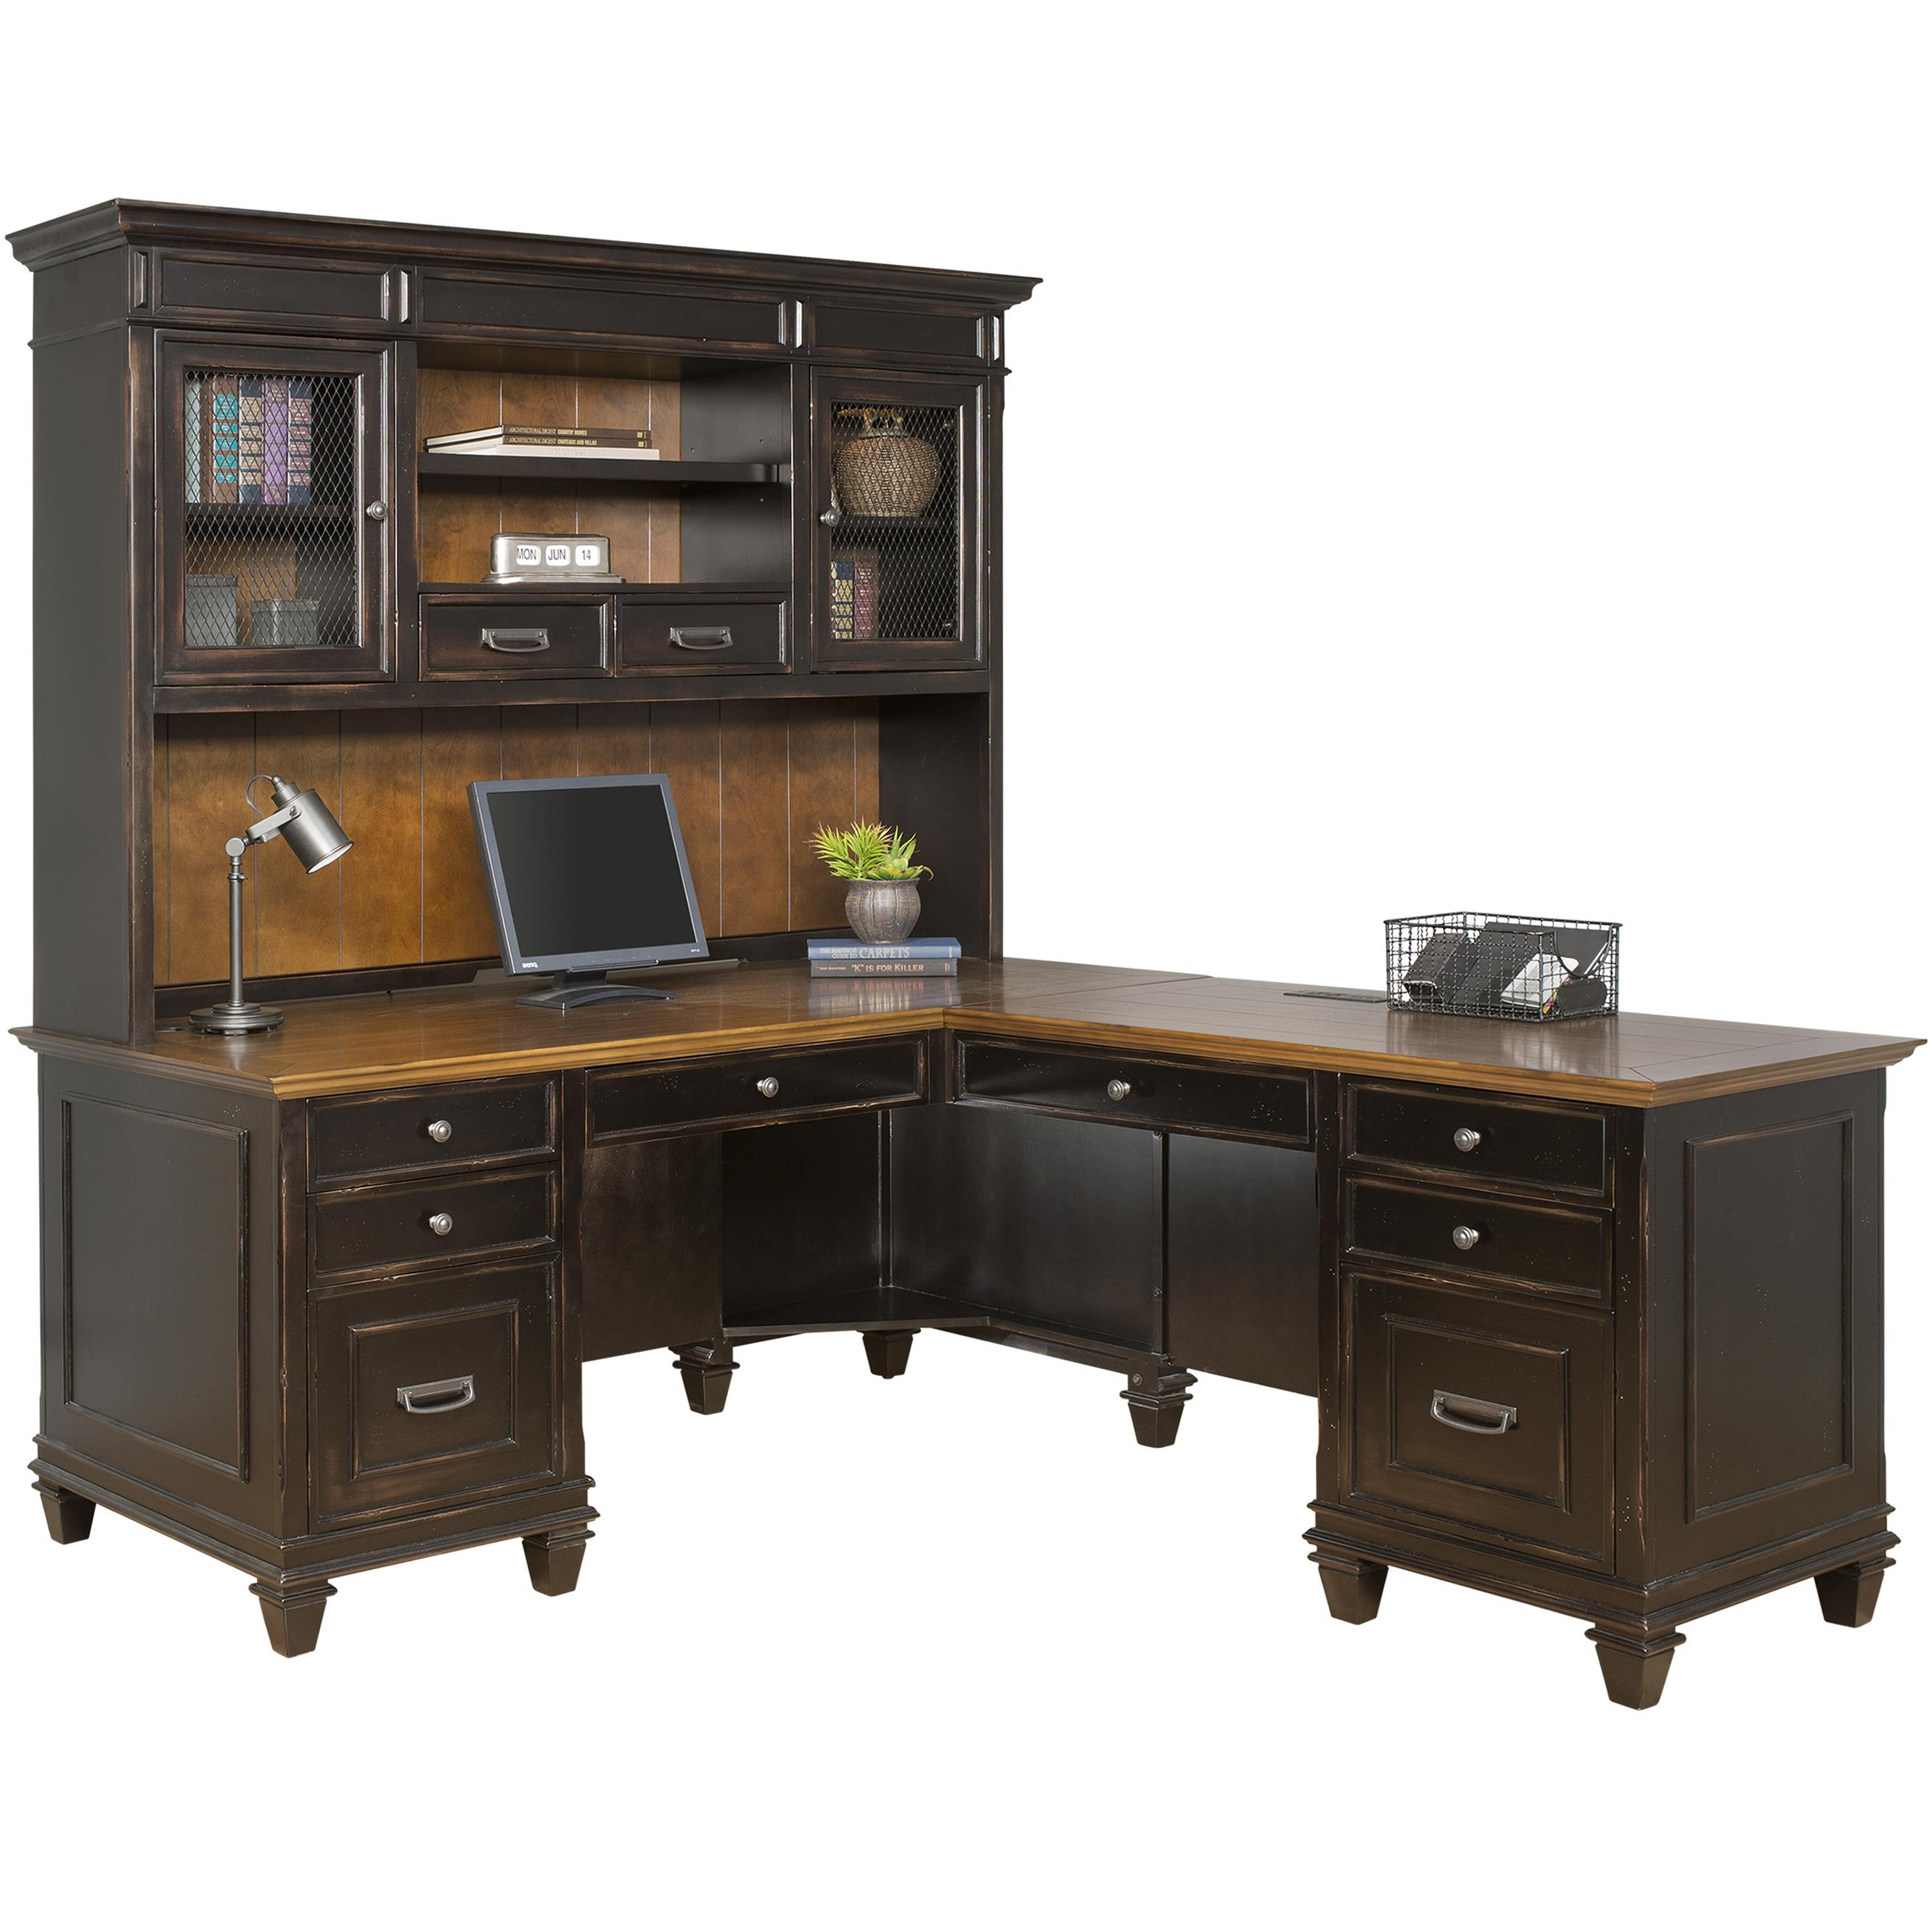 kathy ireland Home by Martin Hartford Right Hand Facing L-Shaped Desk with Hutch - Item Number: IMHF682+684R-R+684R